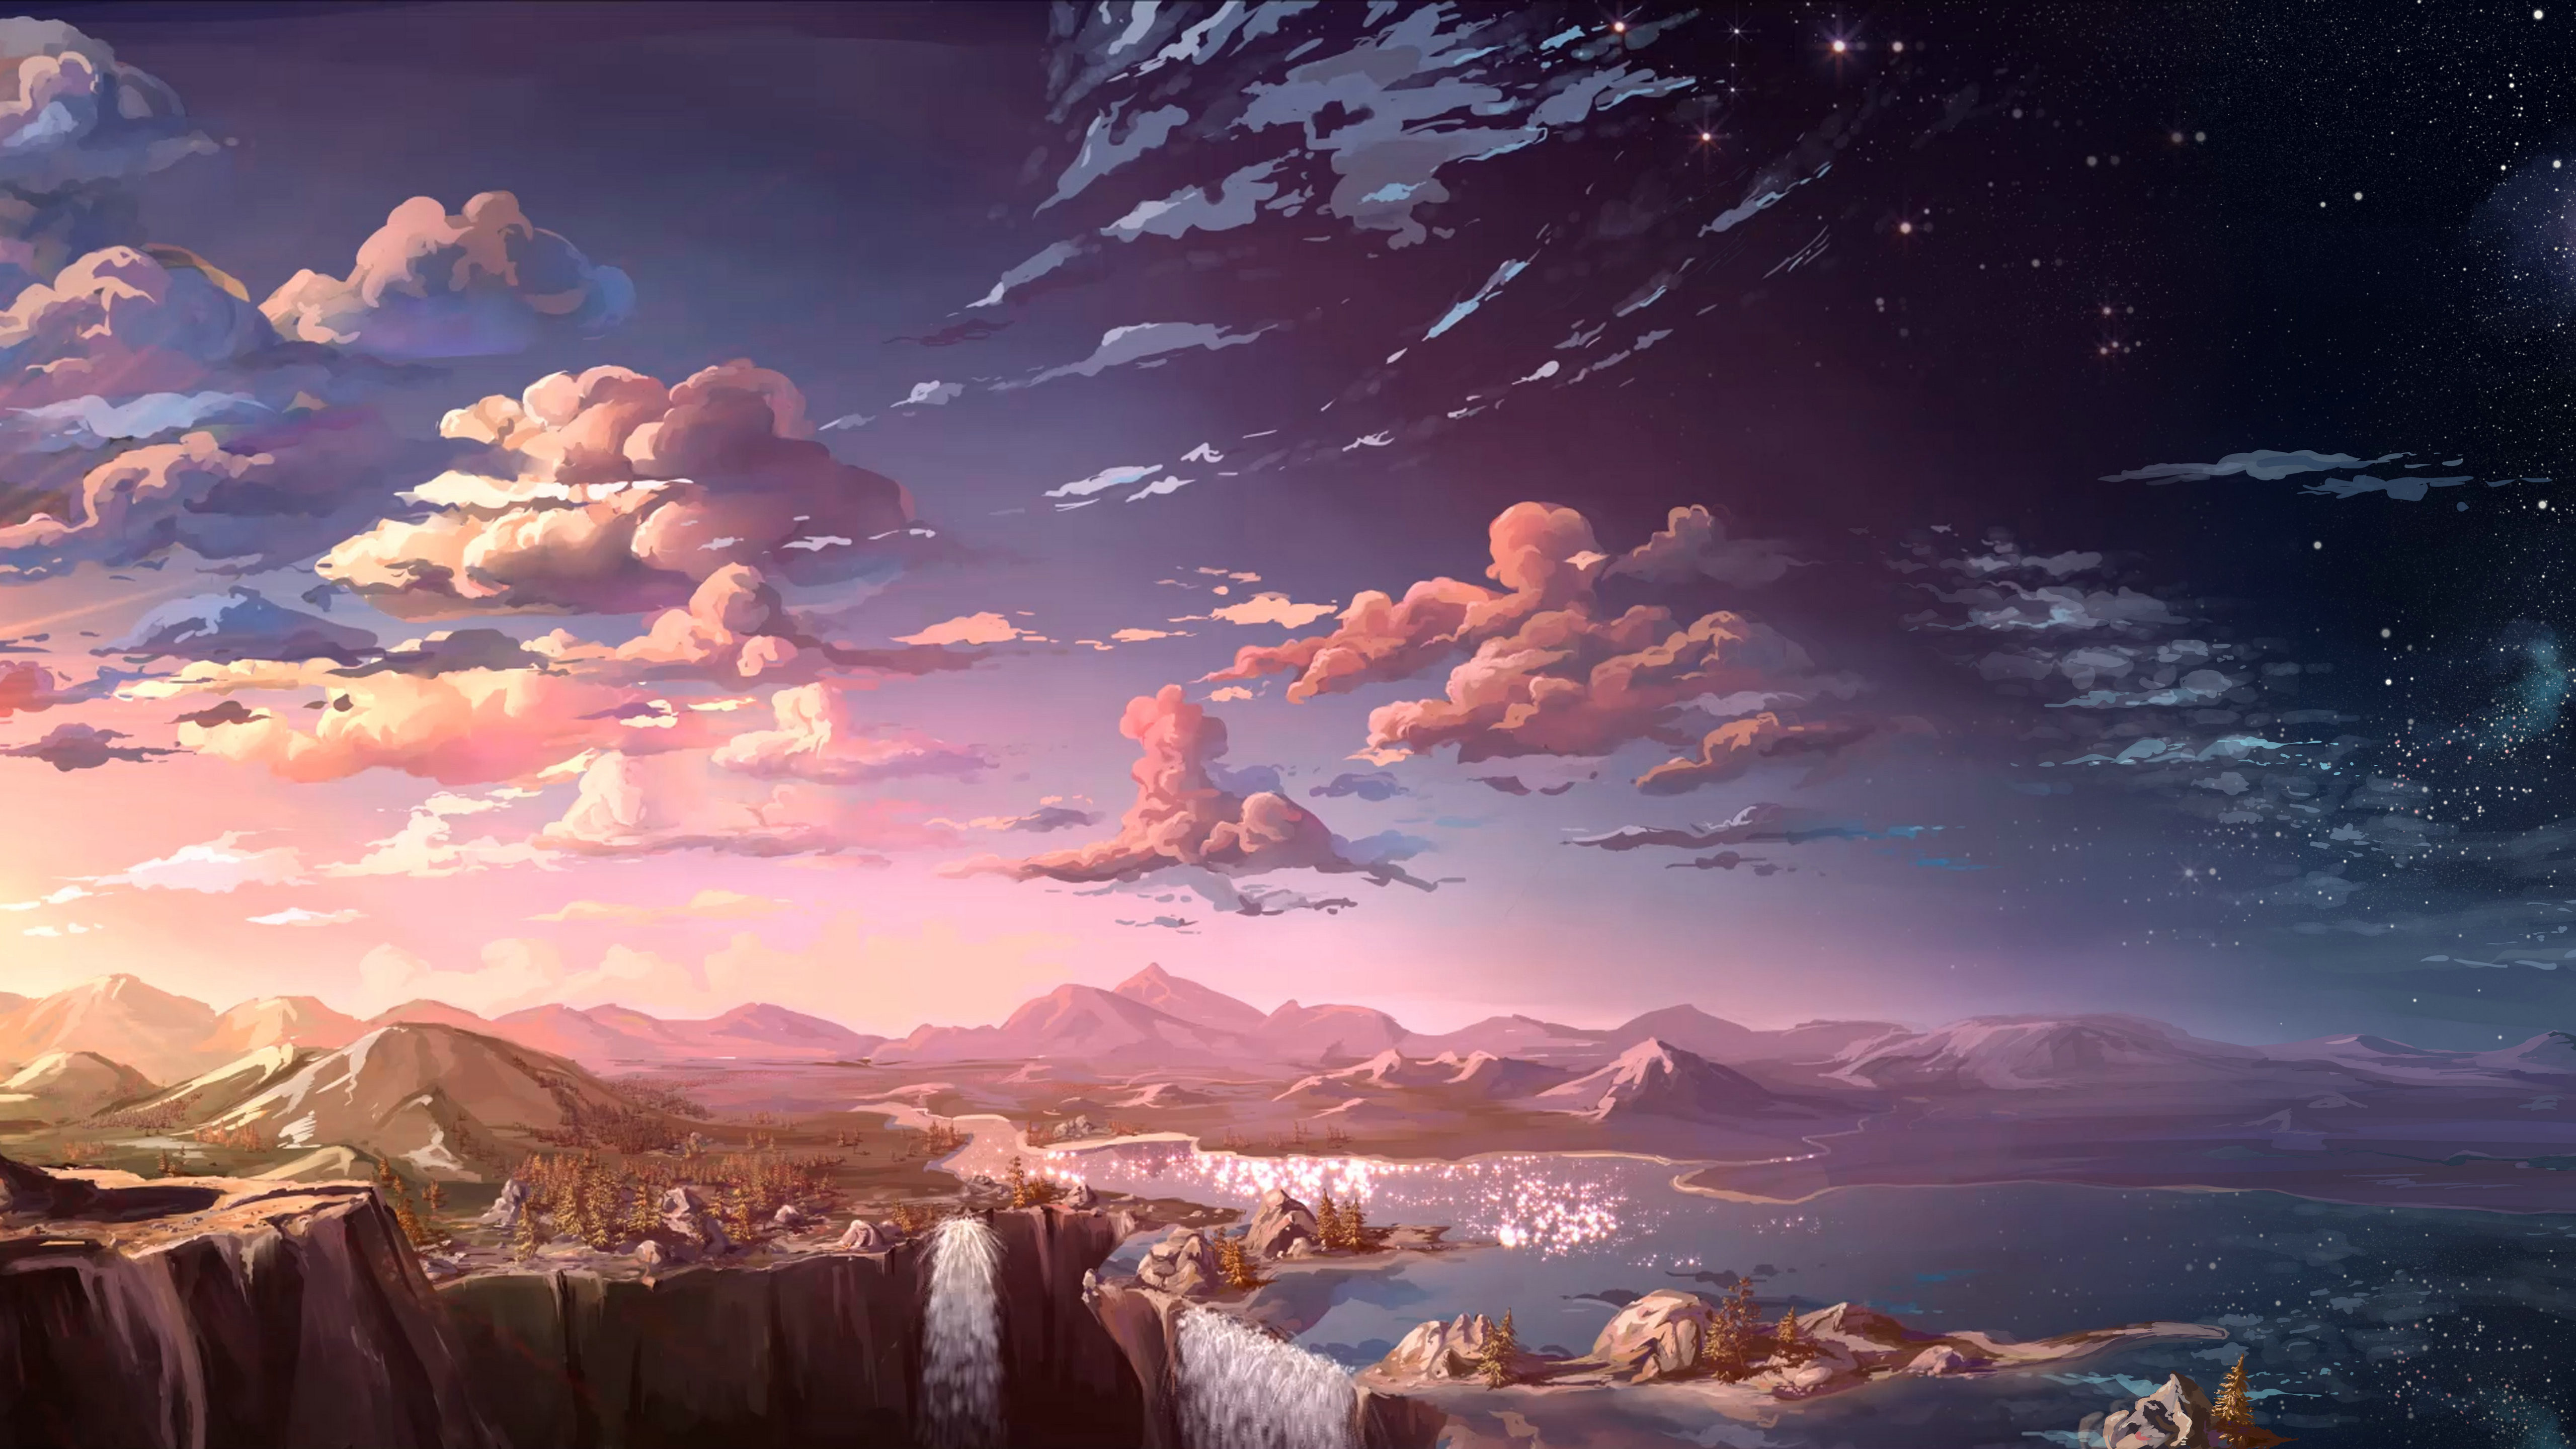 Best ideas about Anime Landscape Wallpaper . Save or Pin Anime Landscape Waterfall Cloud 5k HD Anime 4k Now.